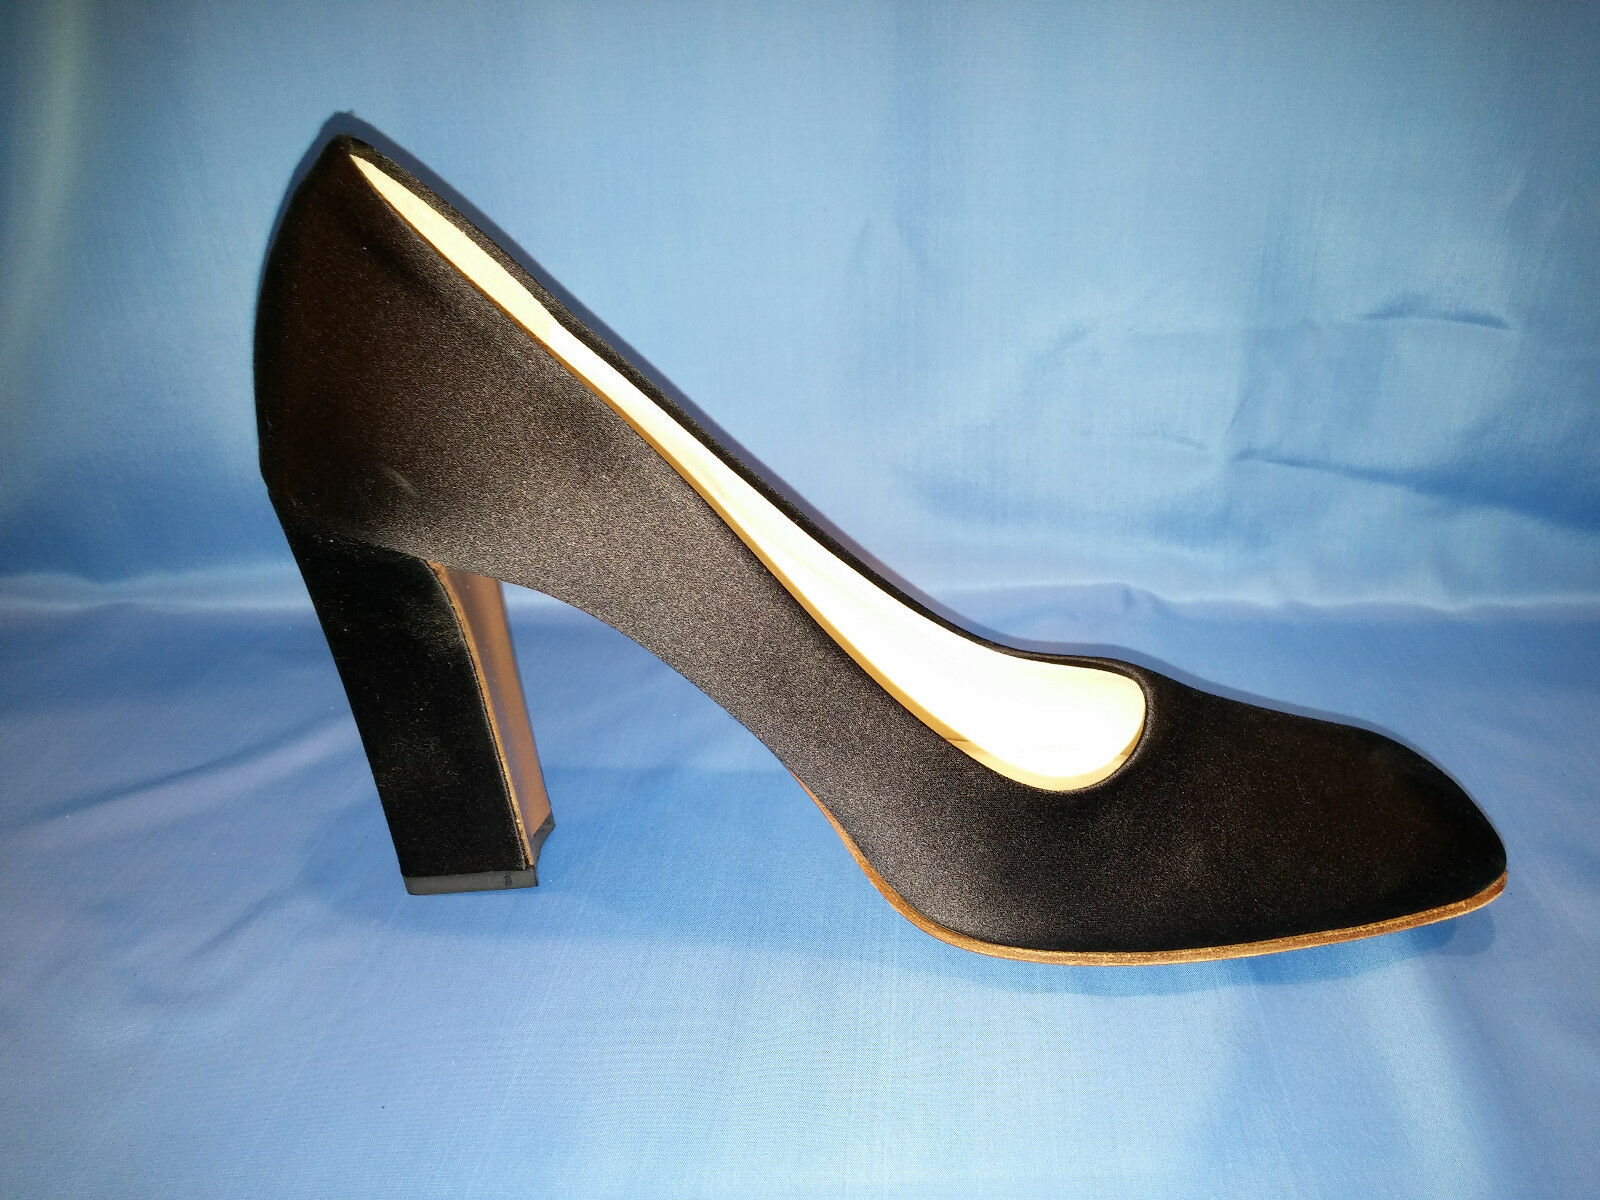 Prada Black Cloth Size 10 High Heels Heels Heels New In Box c2d340